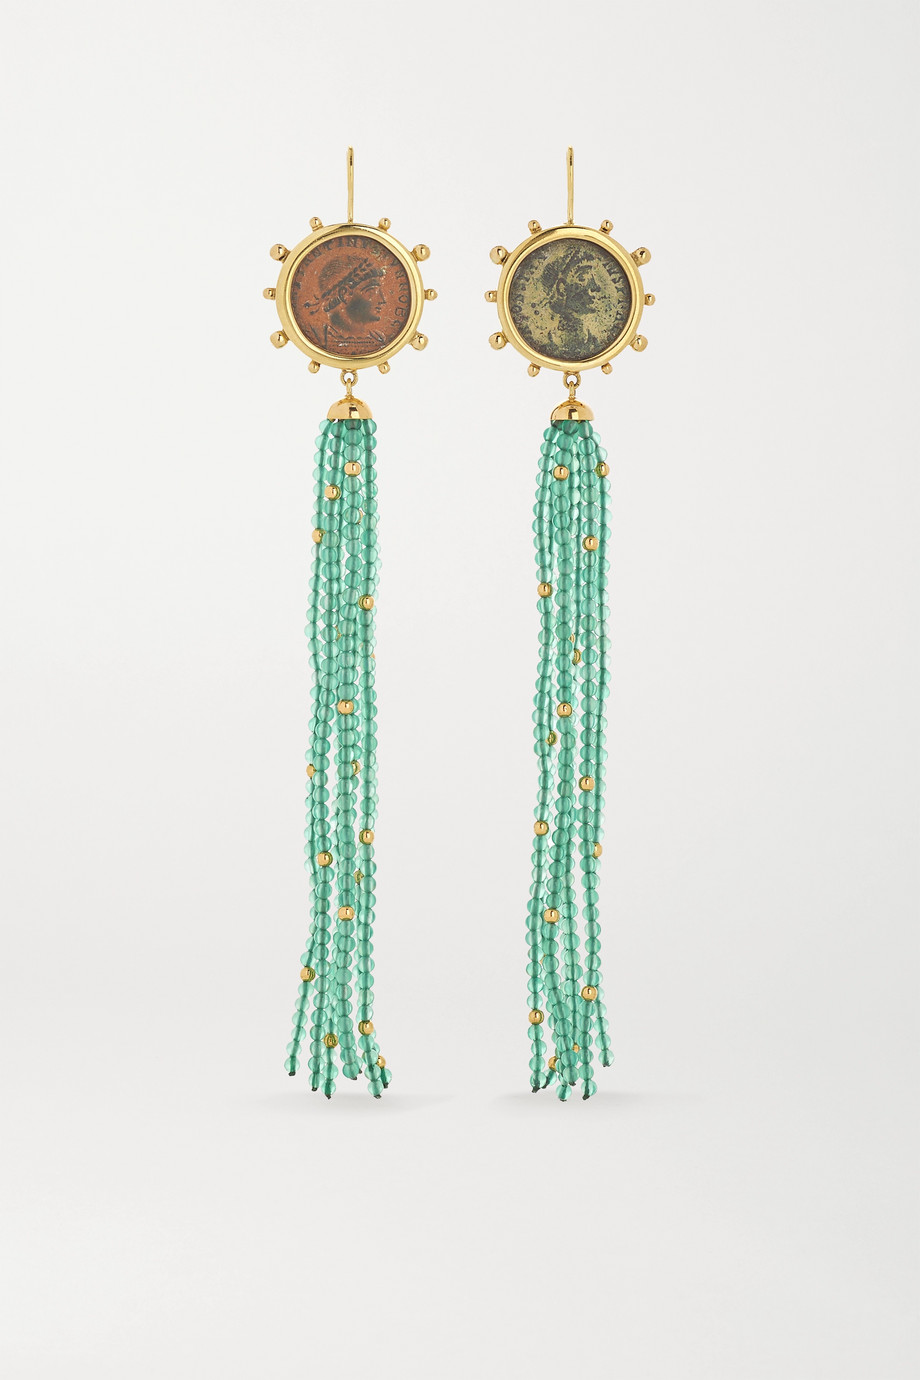 DUBINI Constantine 18-karat gold, bronze and agate earrings